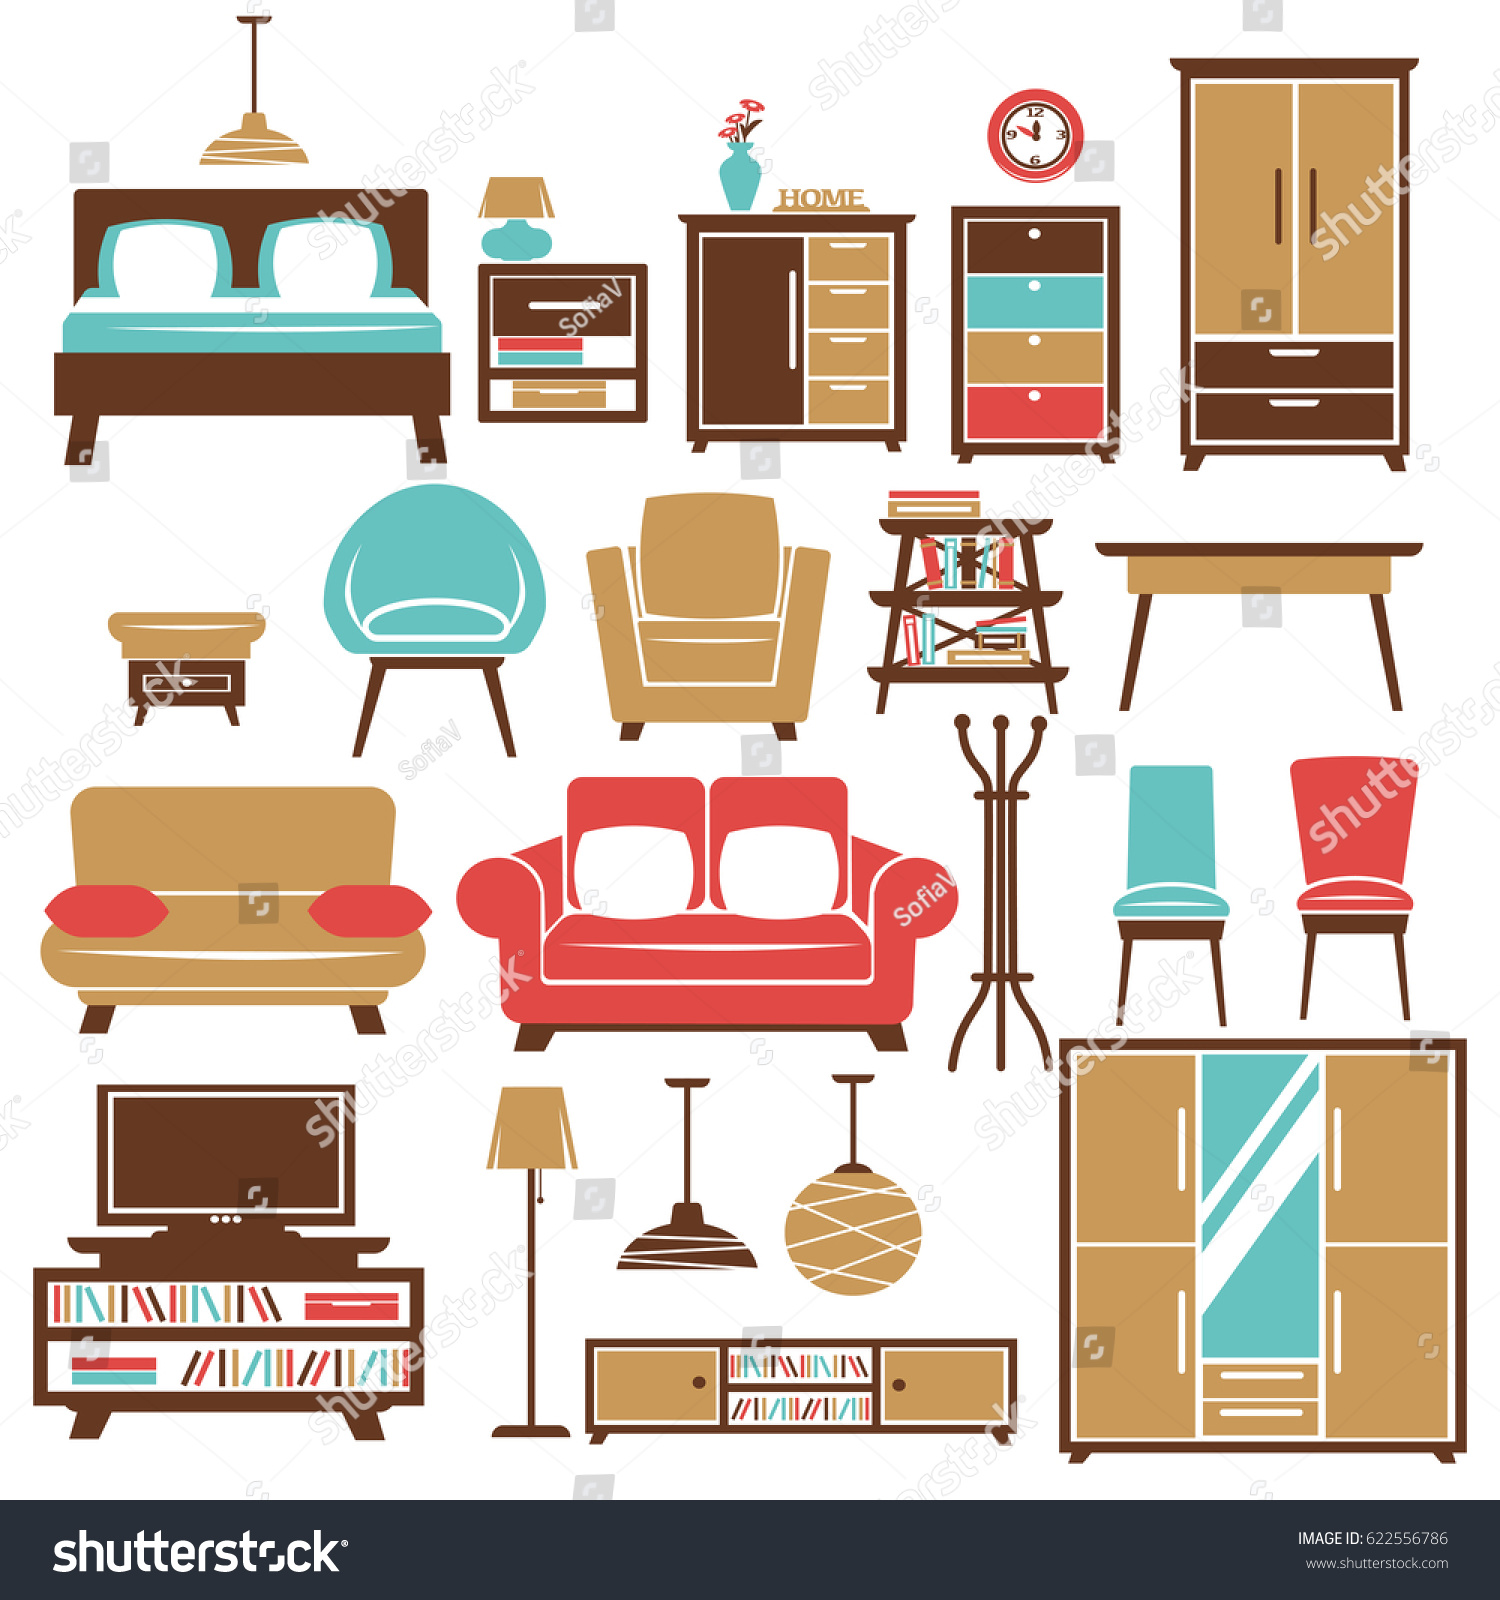 Home Furniture Room Interior Accessories Vector Stock Vector